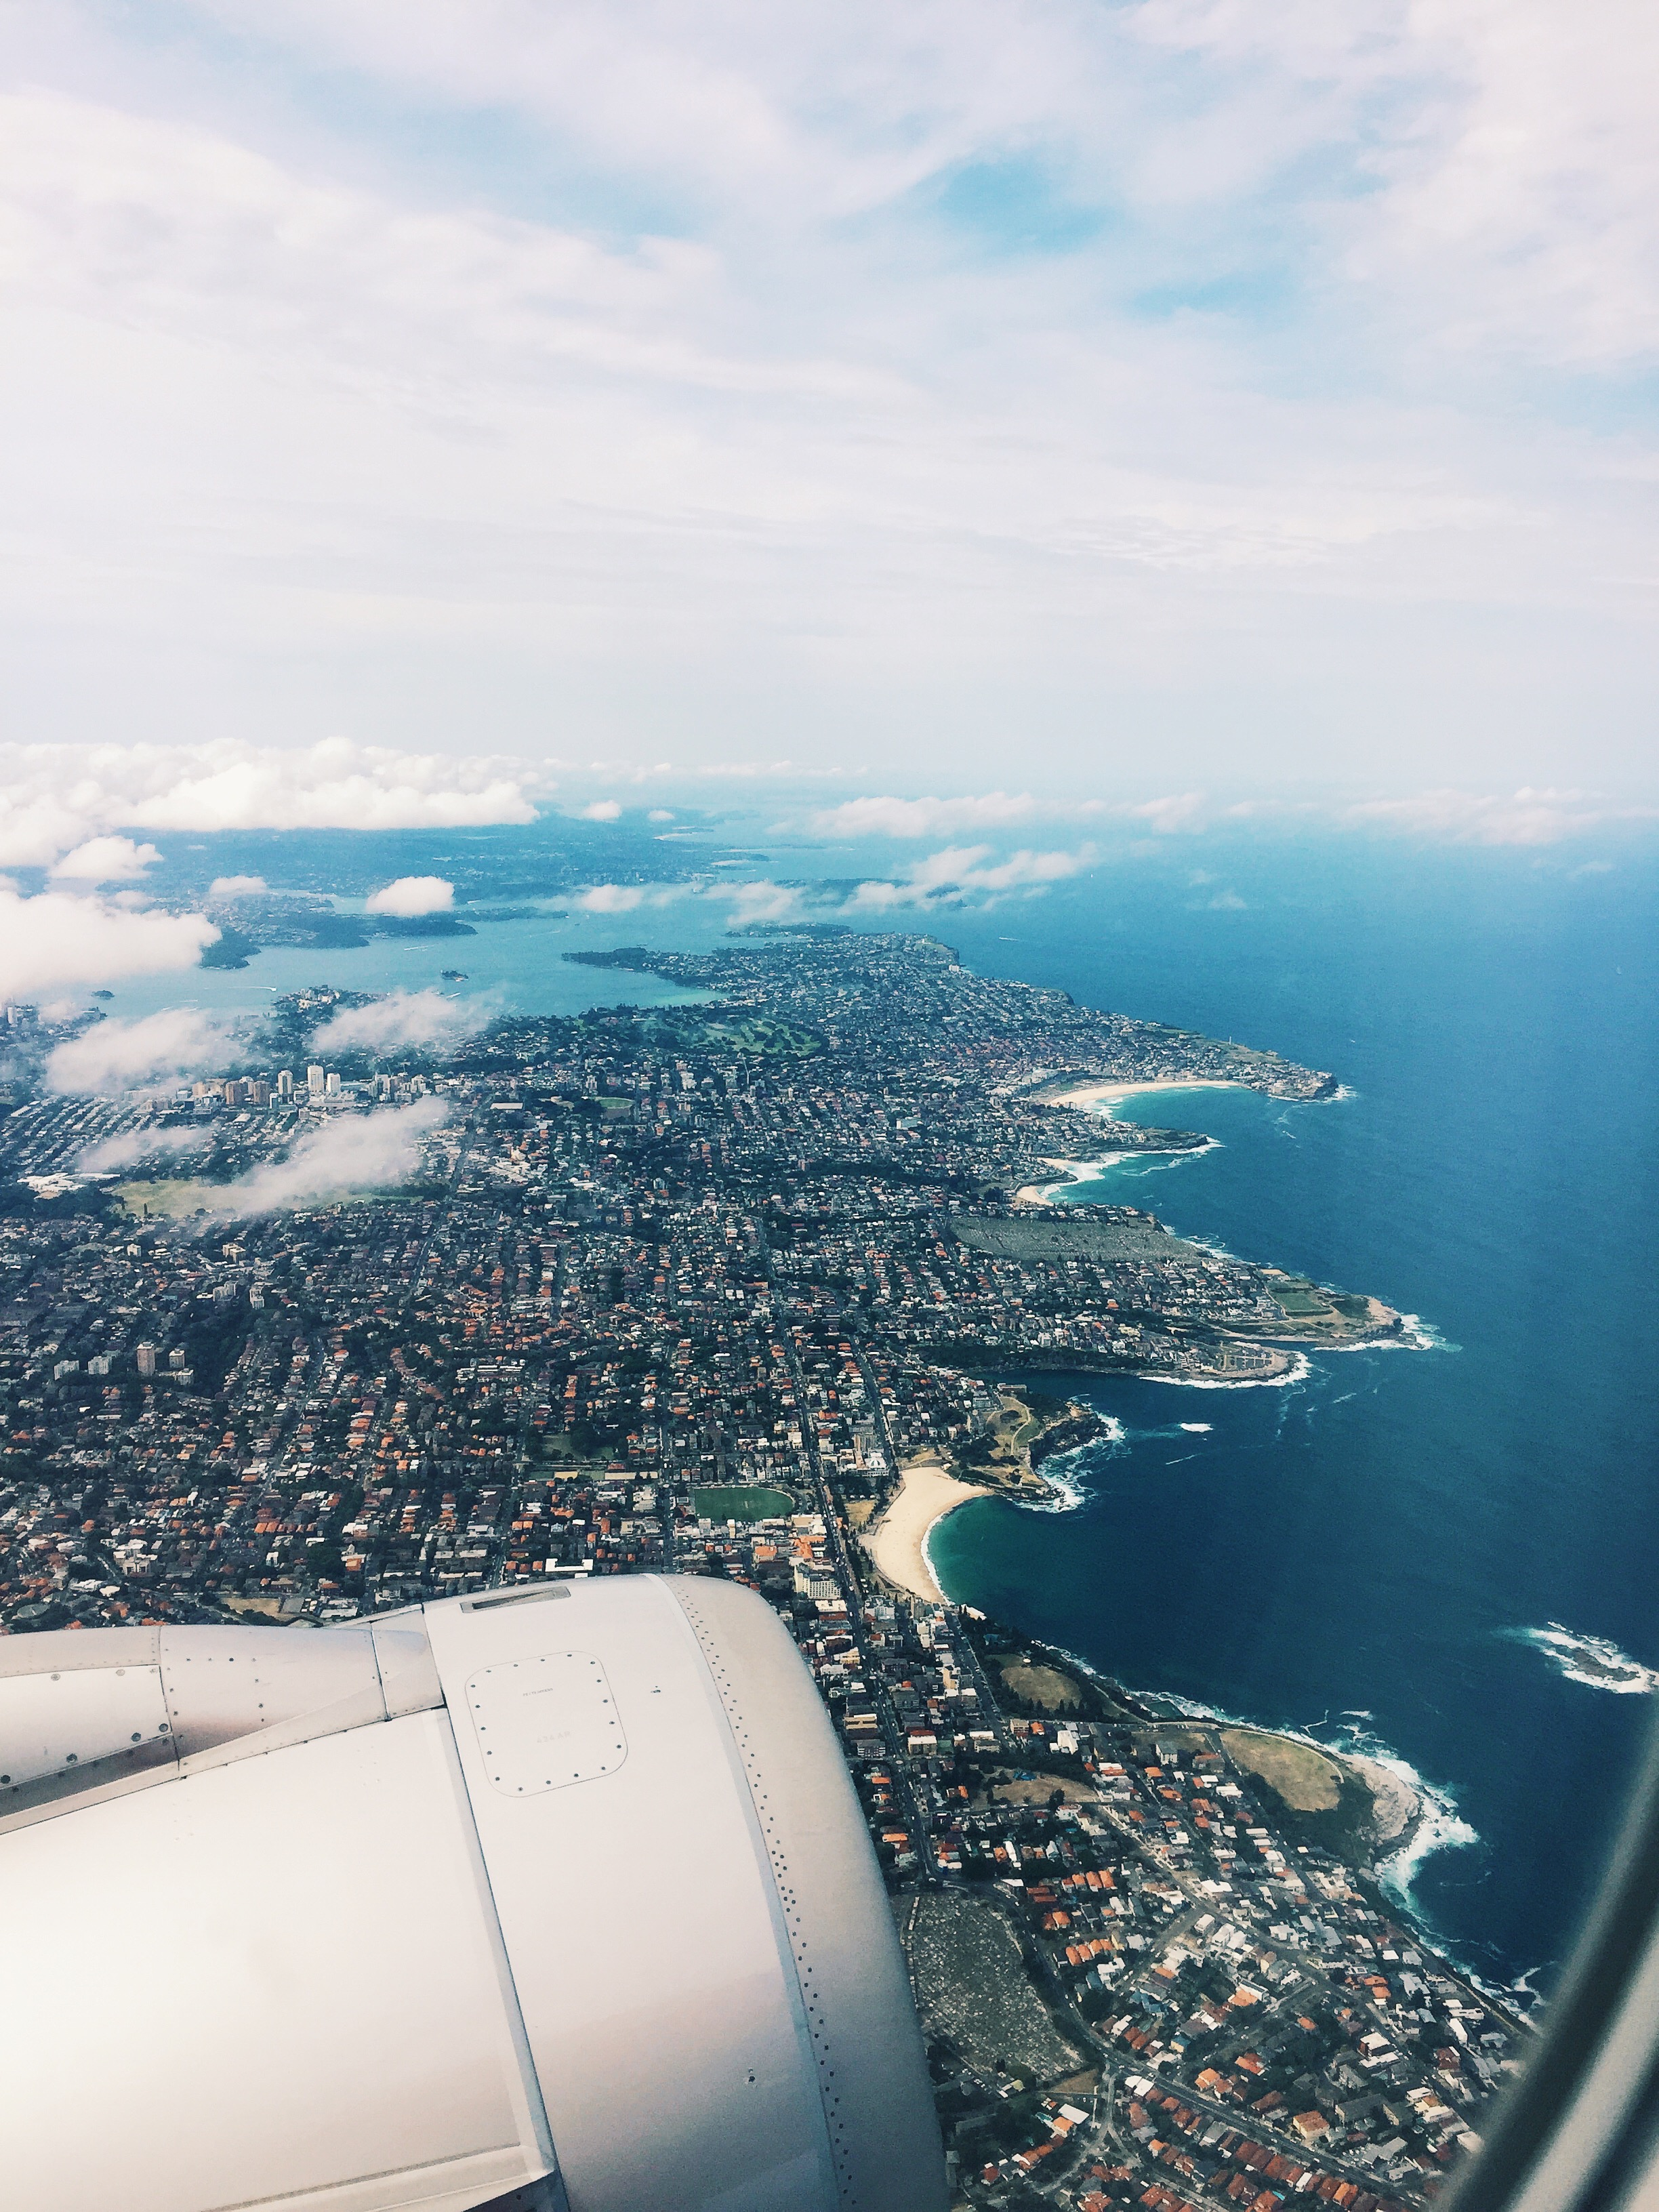 I travelled to Sydney by myself for a week and it was the most amazing experience.